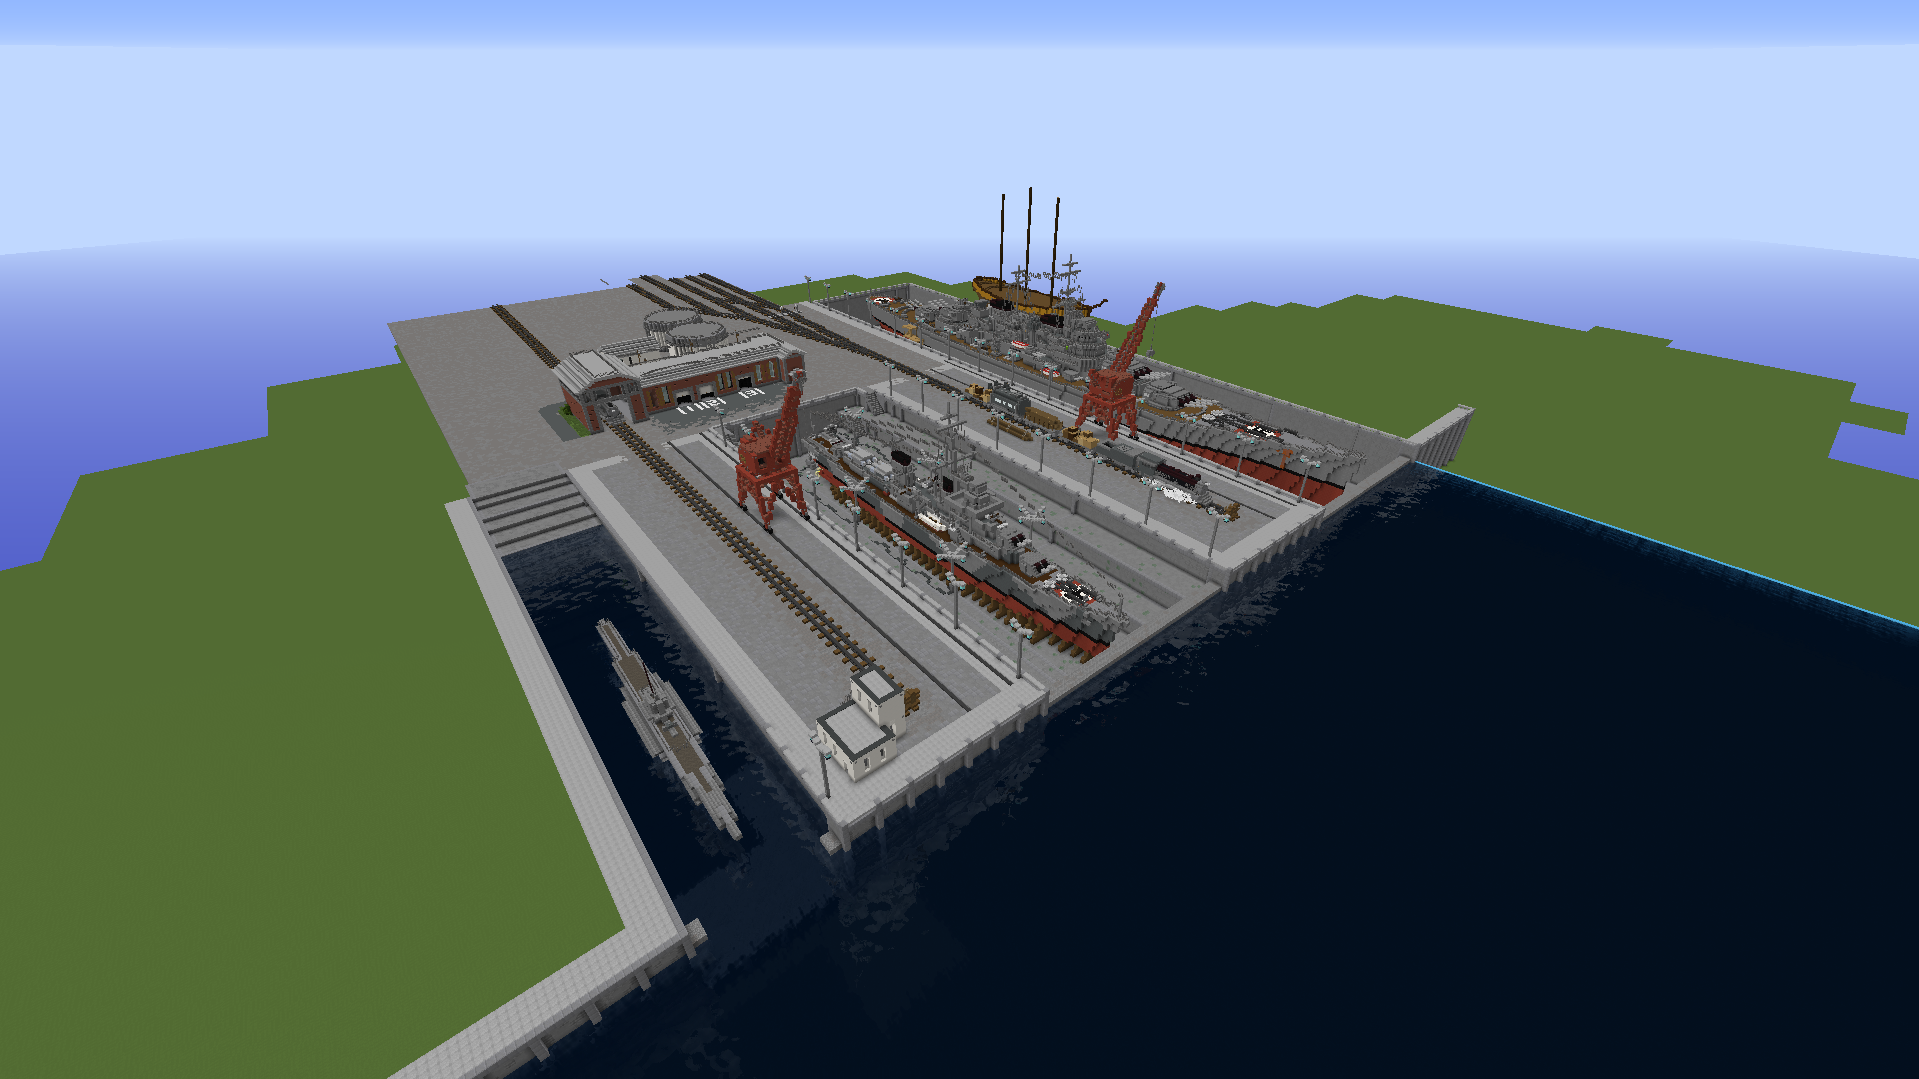 upload_2018-7-15_16-0-3.png